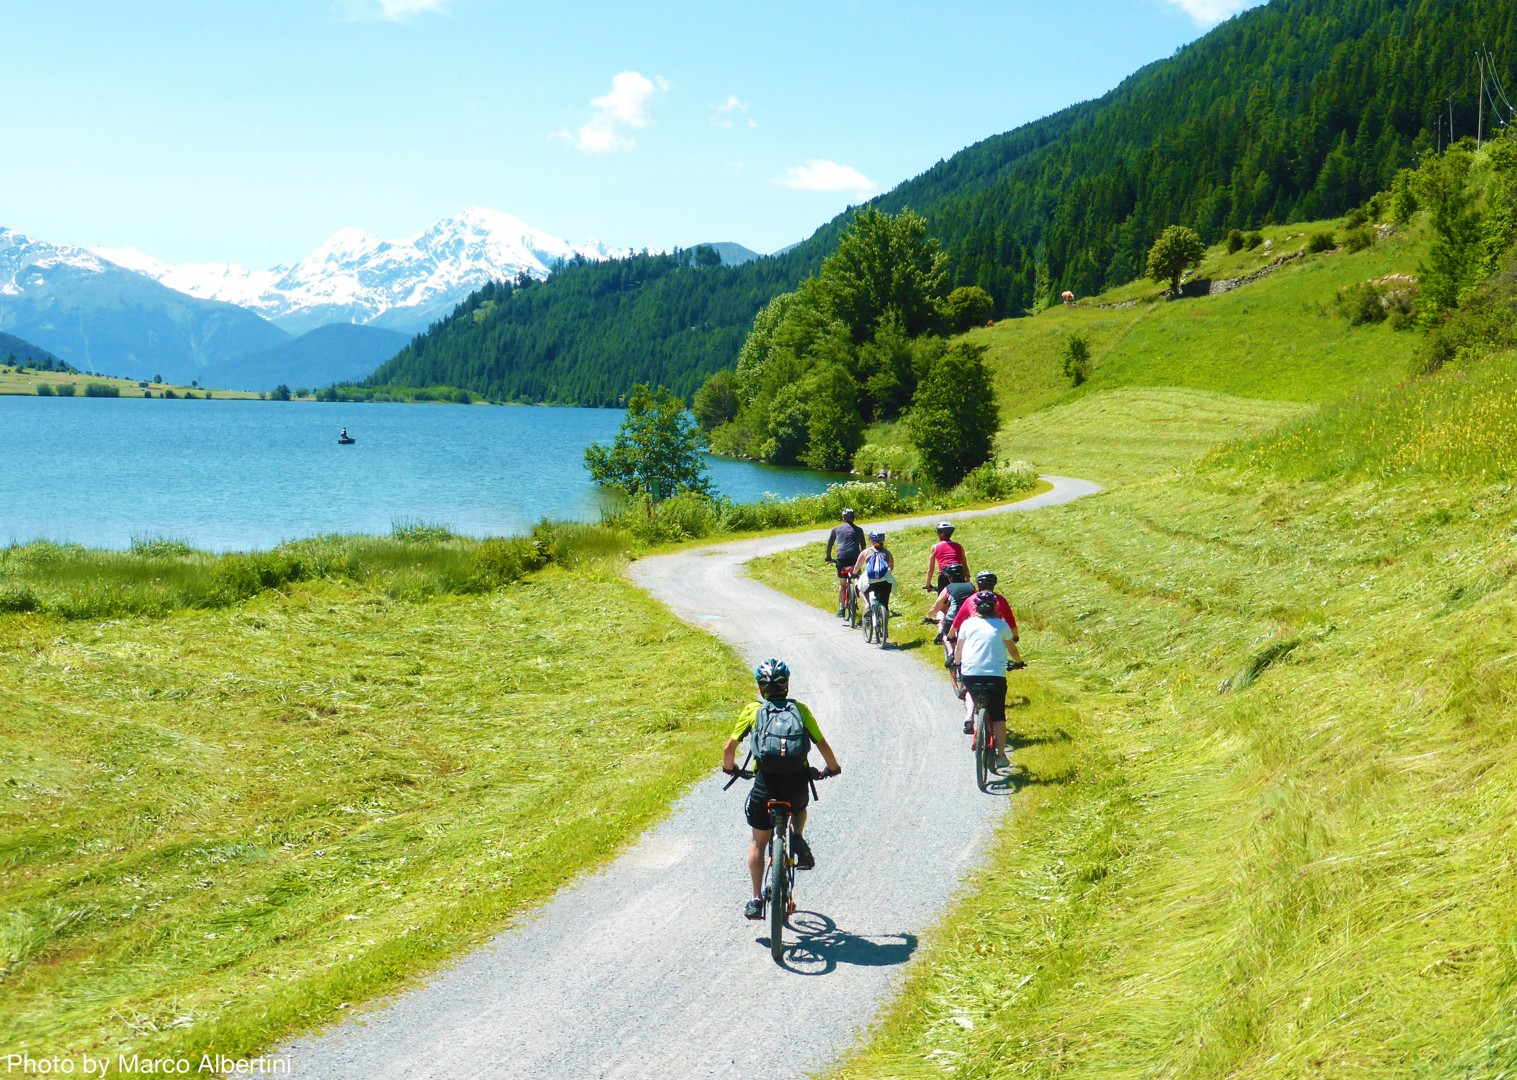 guided-leisurely-cycling-austria-italy-trip.jpg - Austria and Italy - La Via Claudia - Guided Leisure Cycling Holiday - Leisure Cycling